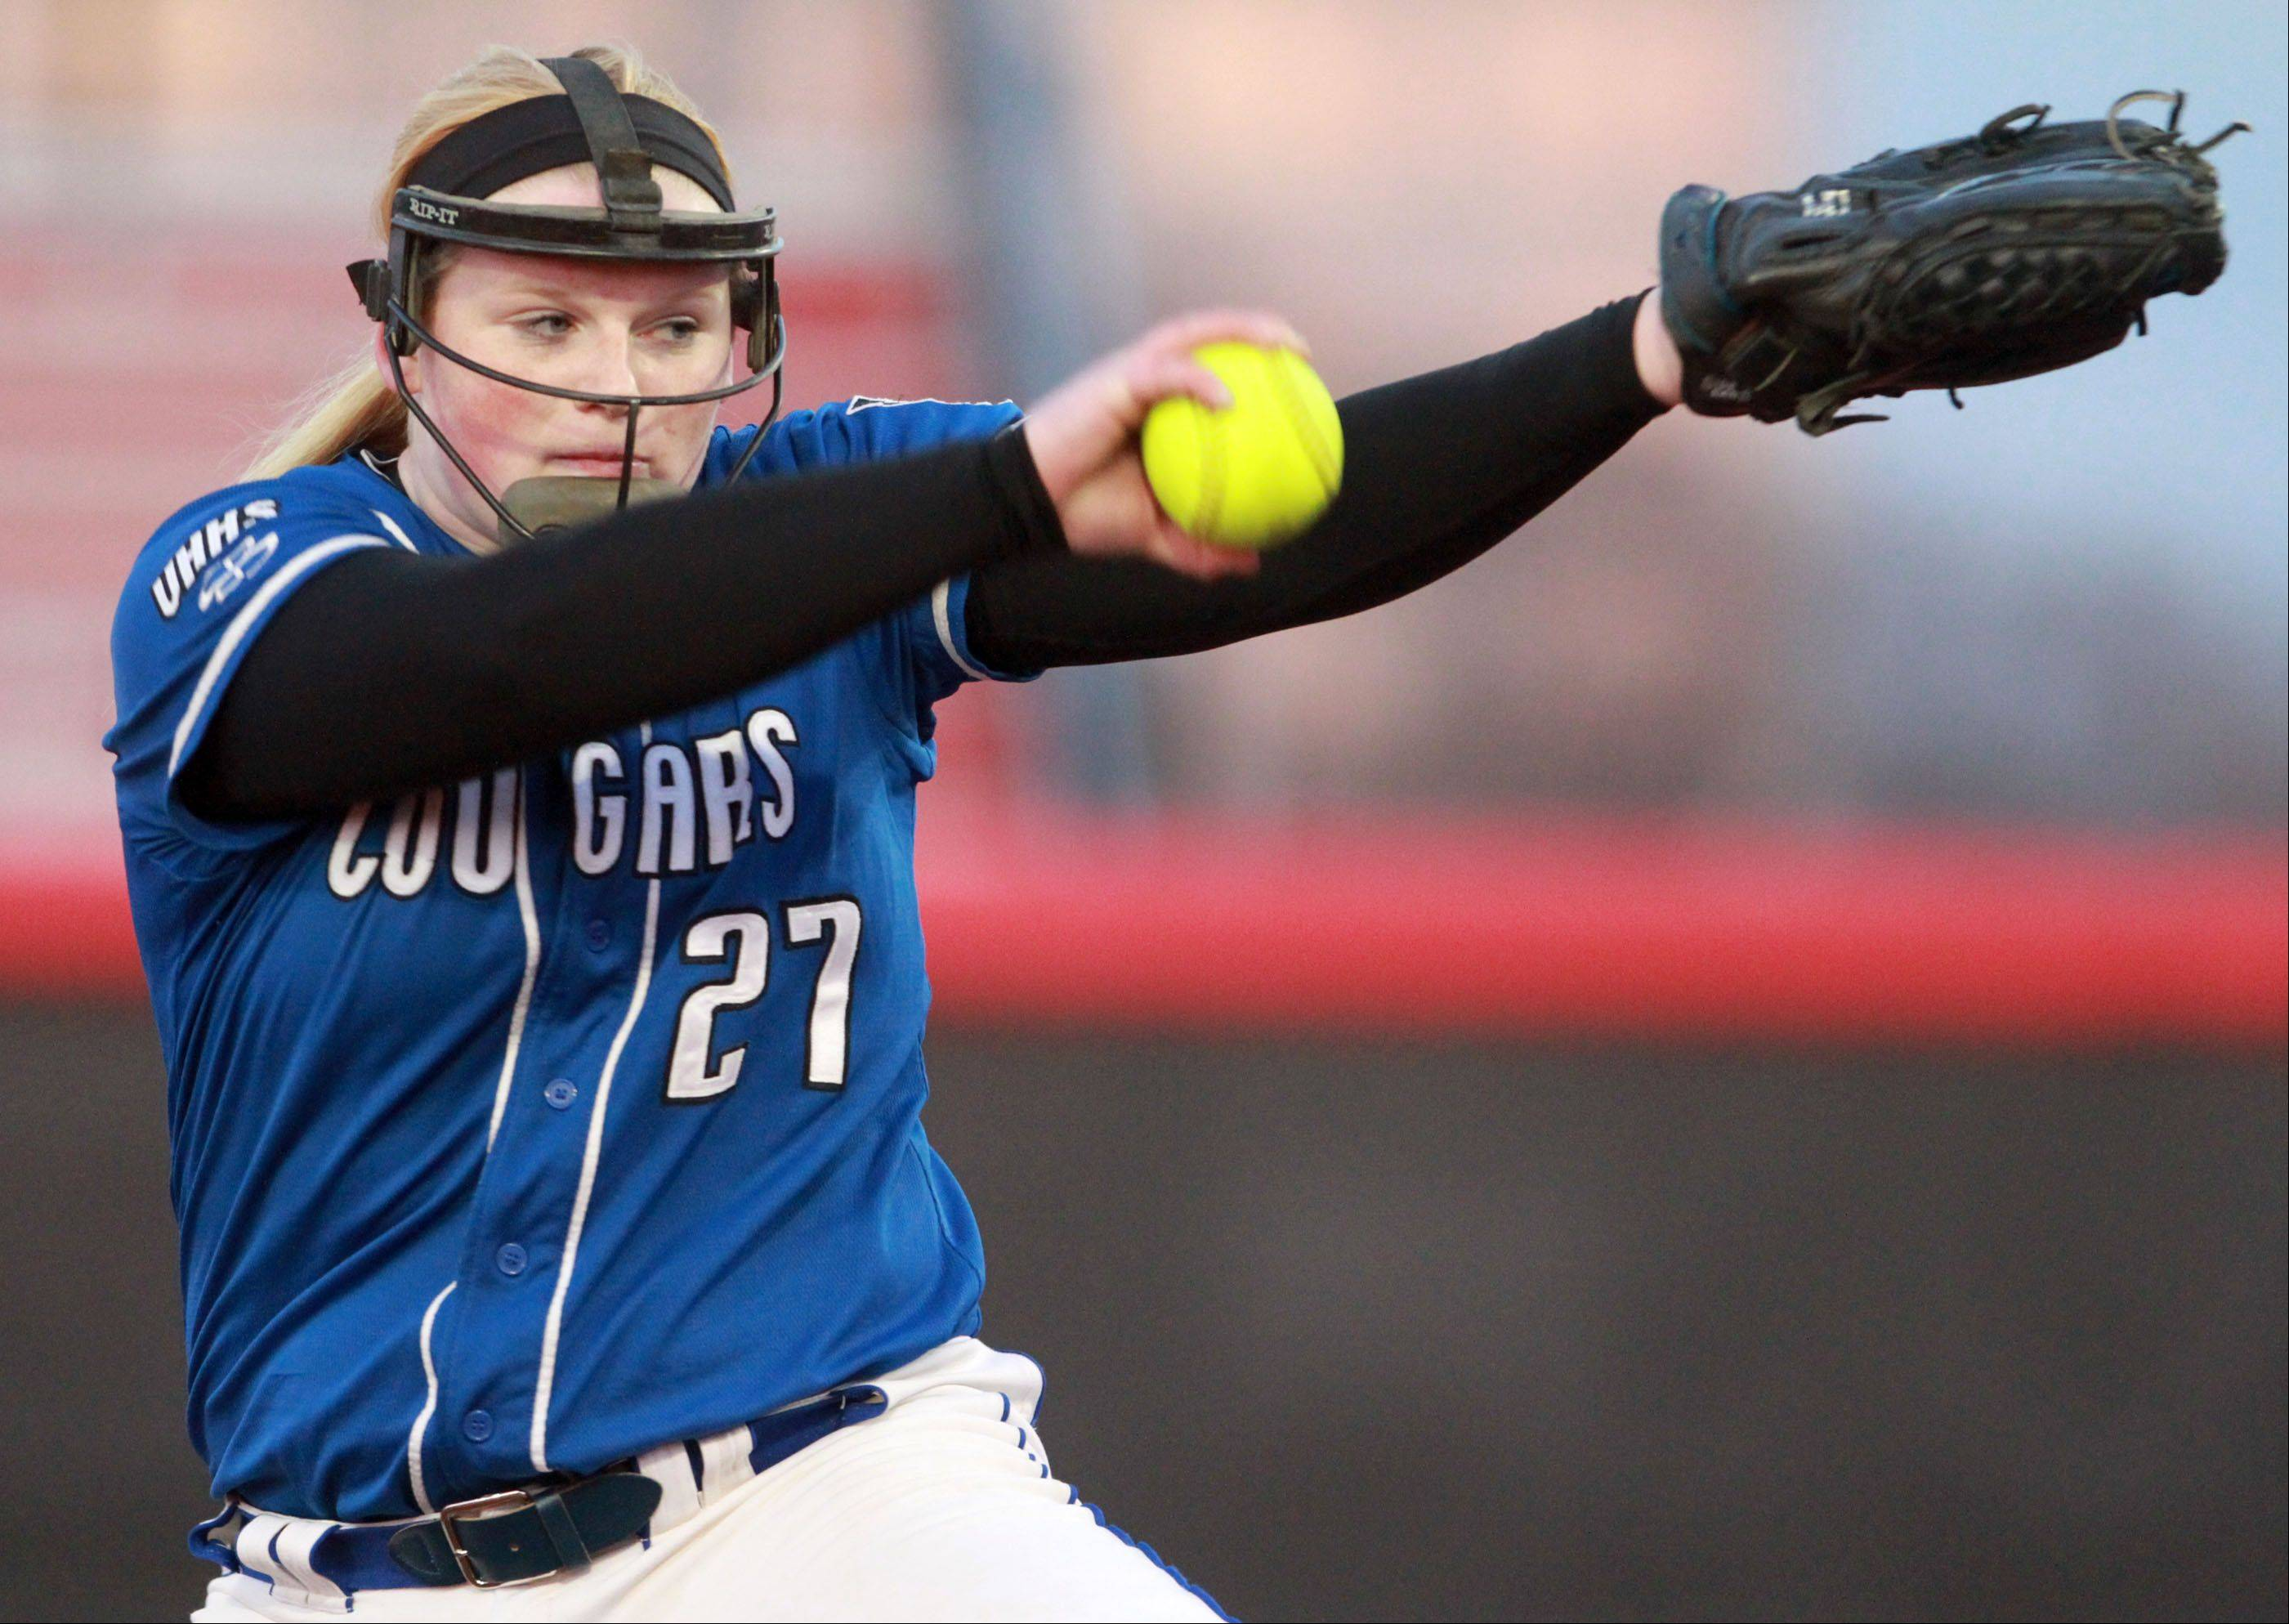 Vernon Hills' pitcher Jenn Claussen against Stevenson at The Ballpark at Rosemont on Friday.